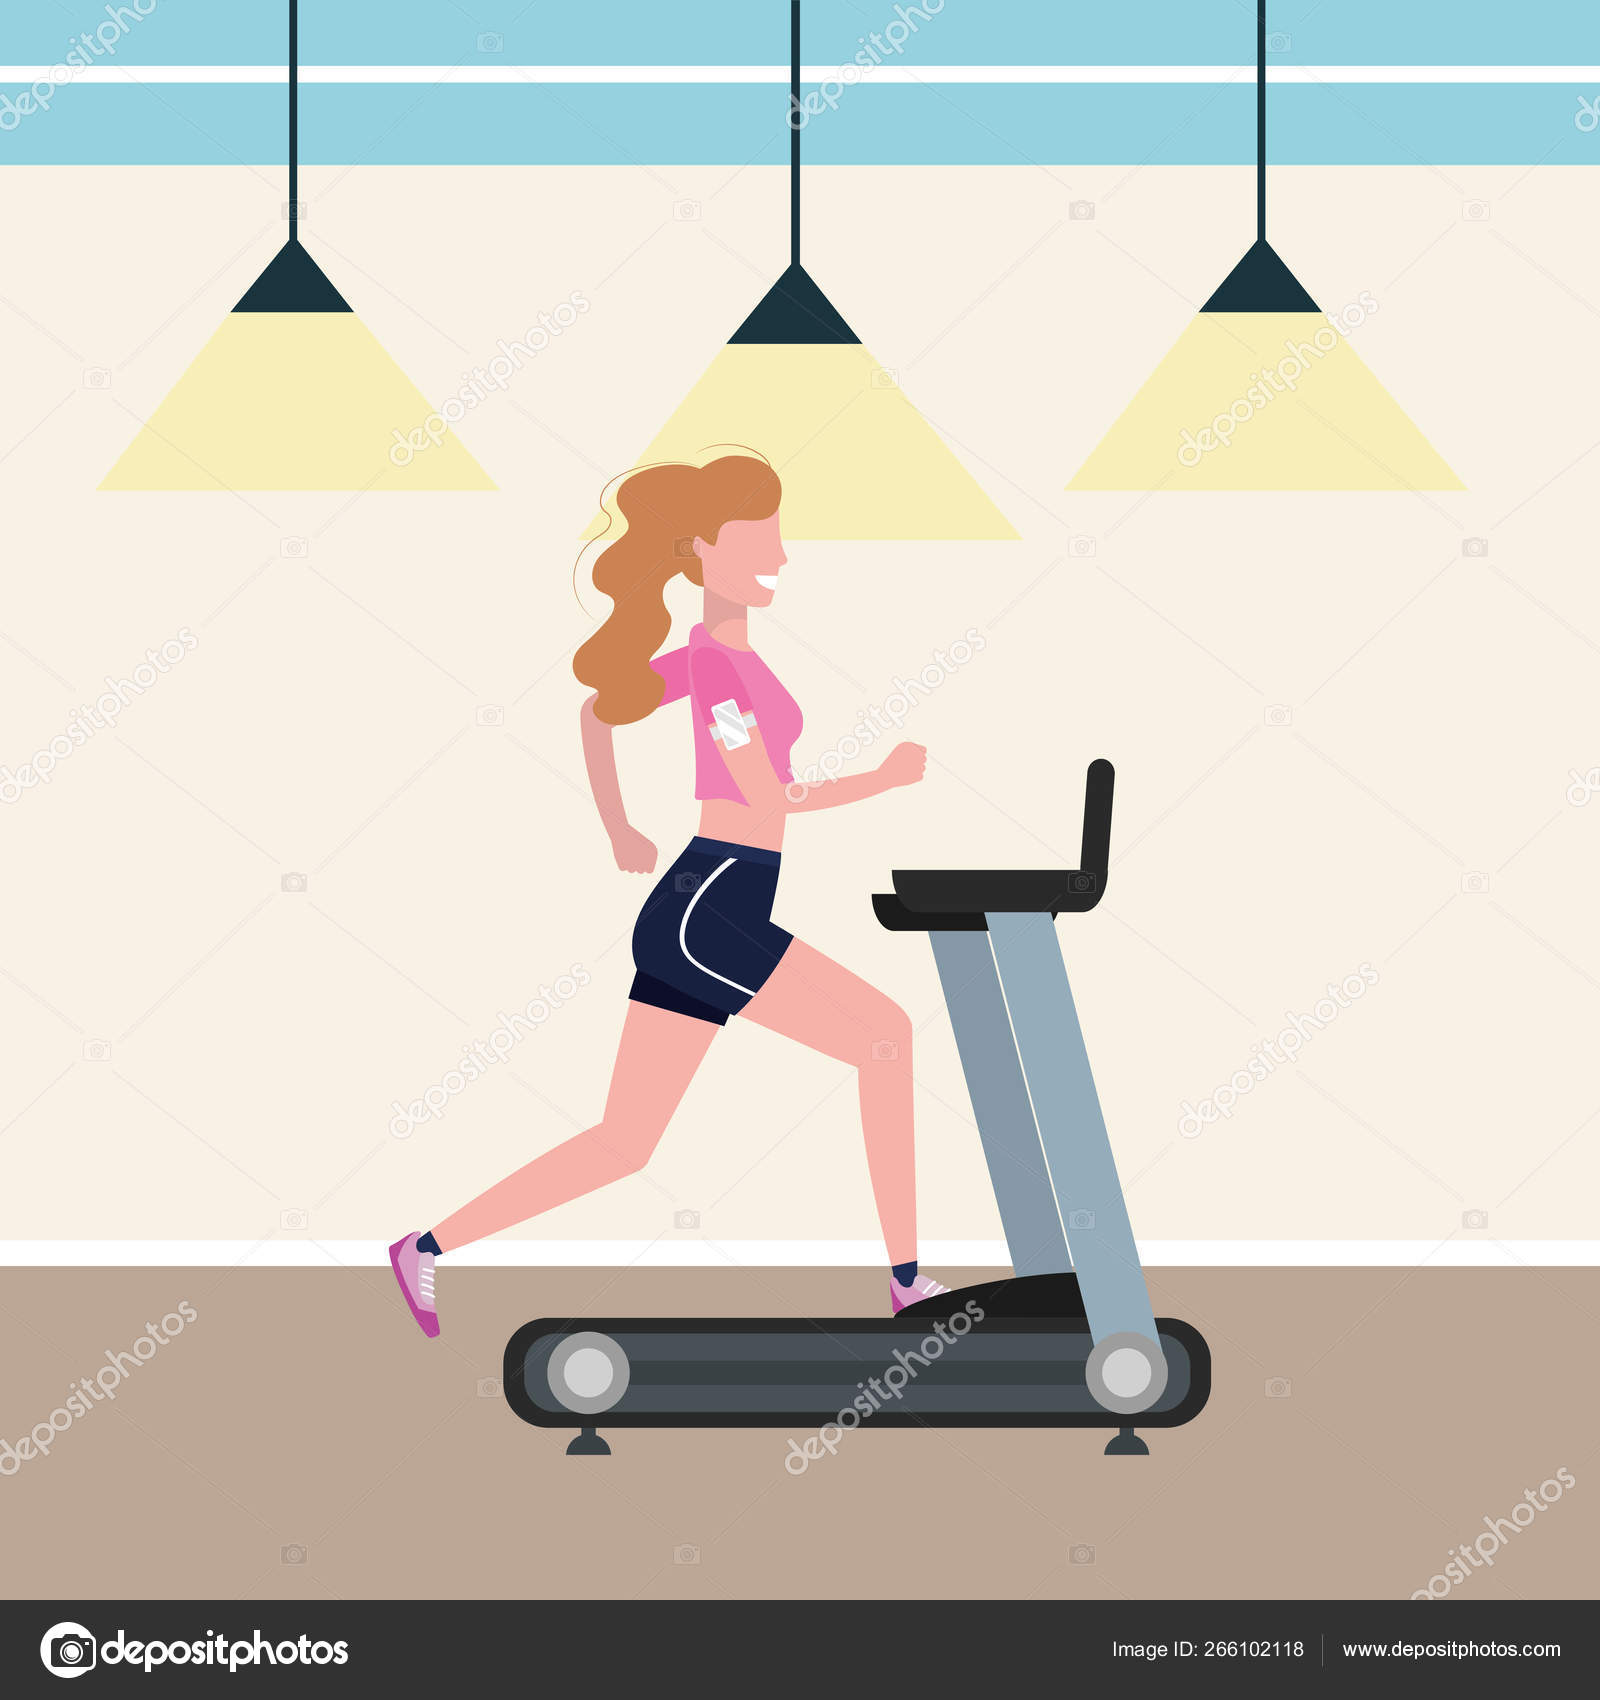 Fitness Exercise Cartoon Stock Vector C Stockgiu 266102118